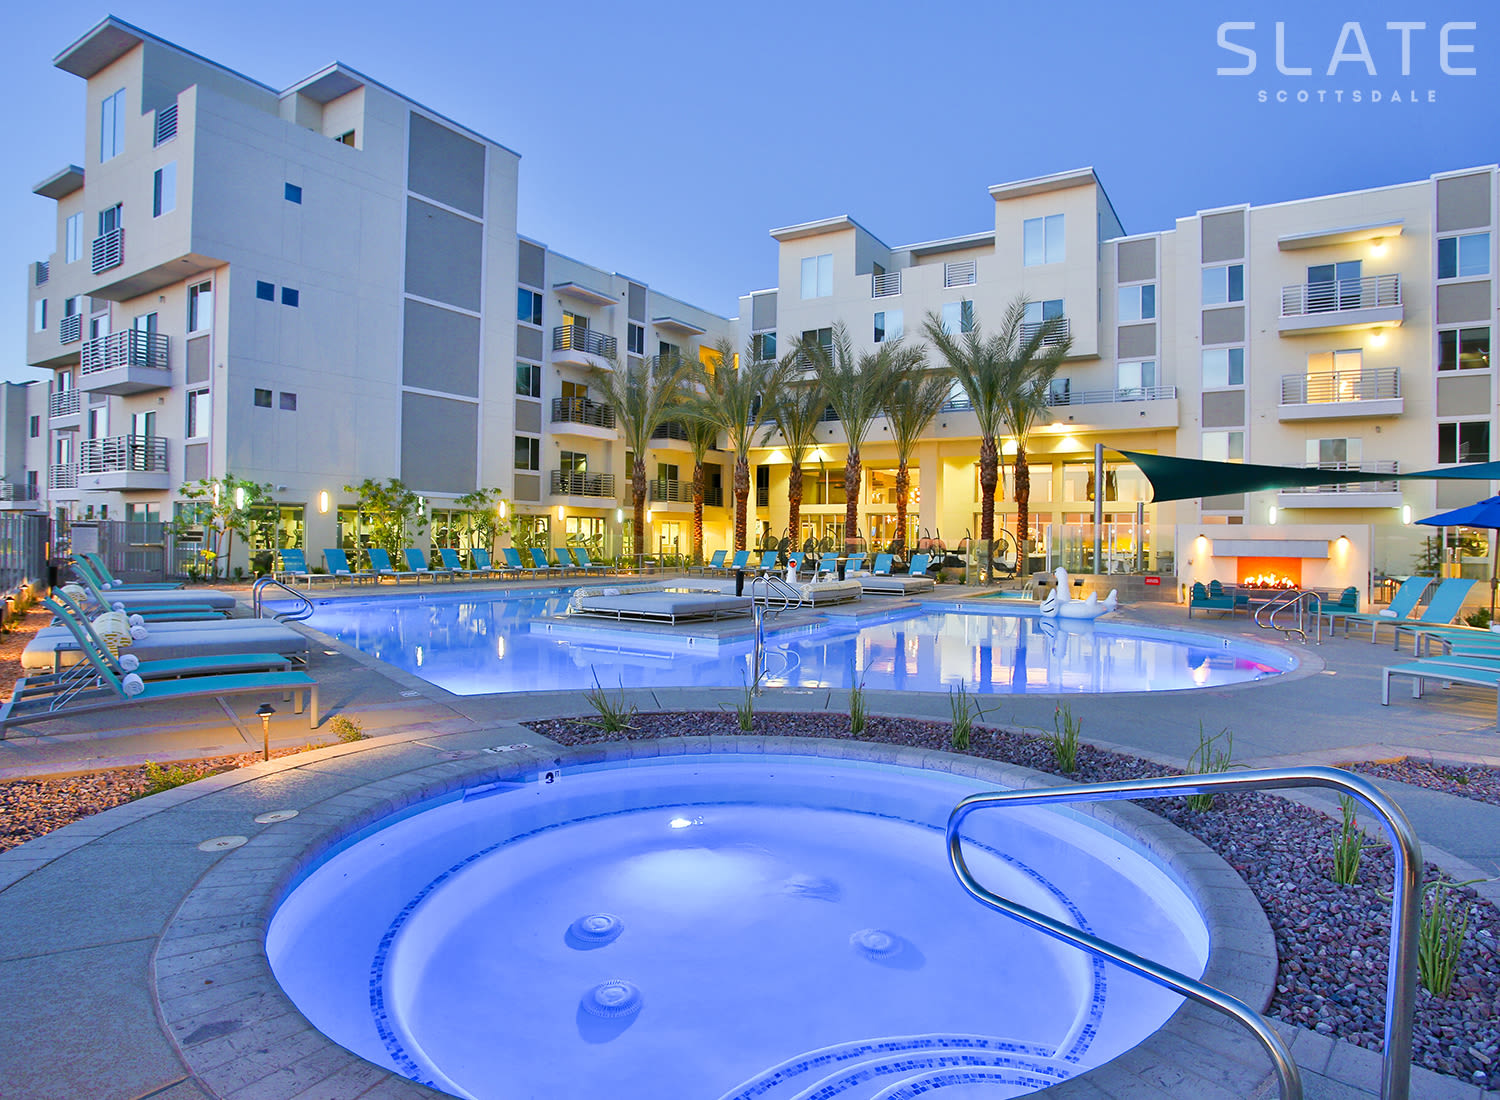 Slate Scottsdale apartments in Phoenix, Arizona